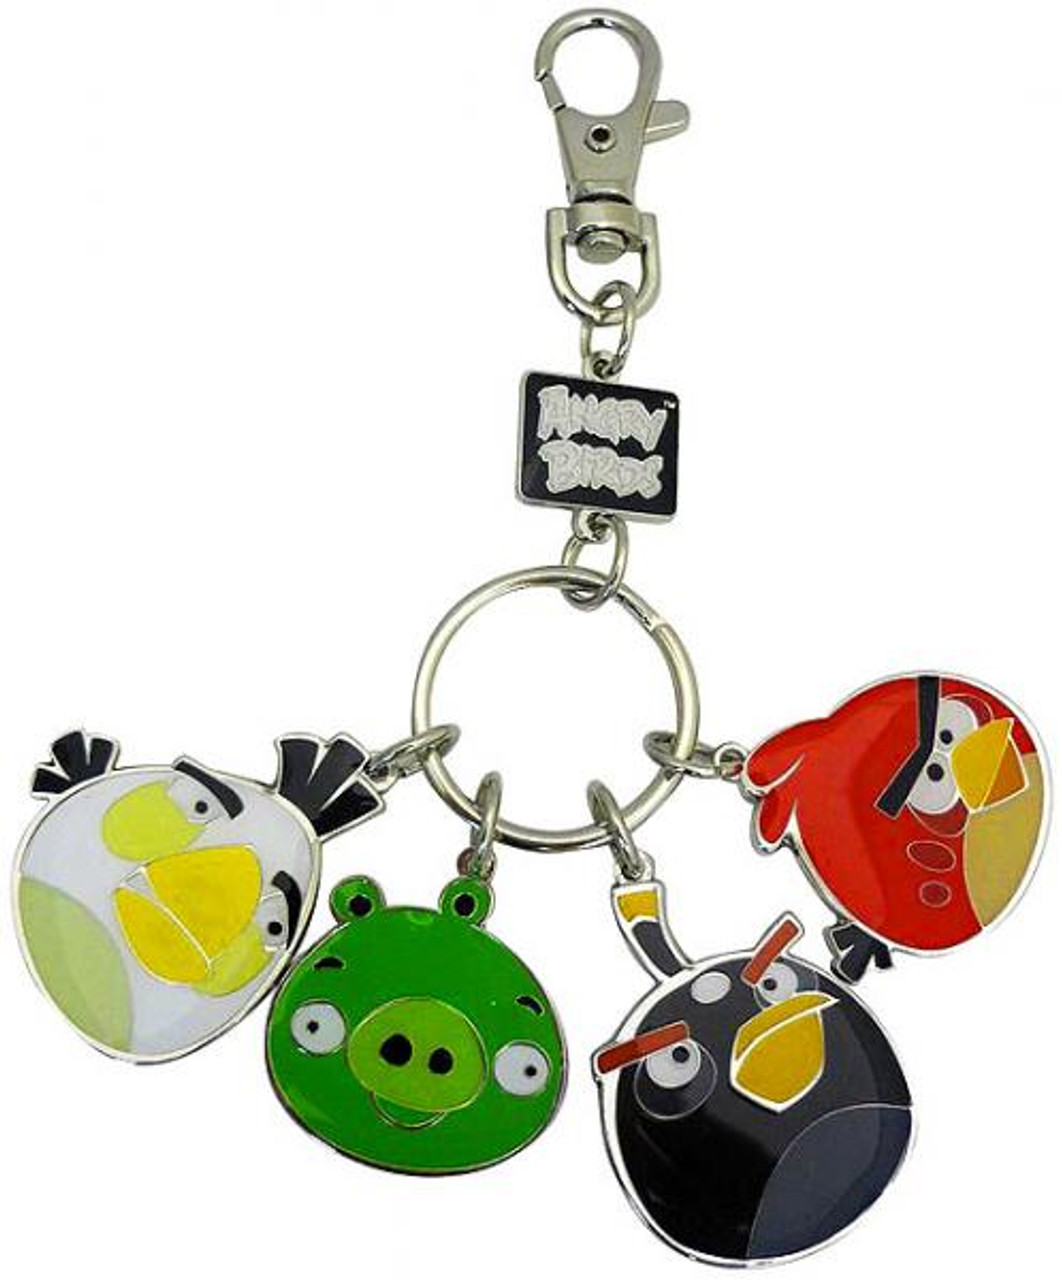 Angry Birds Set of 4 Style 2 Metal Keychains